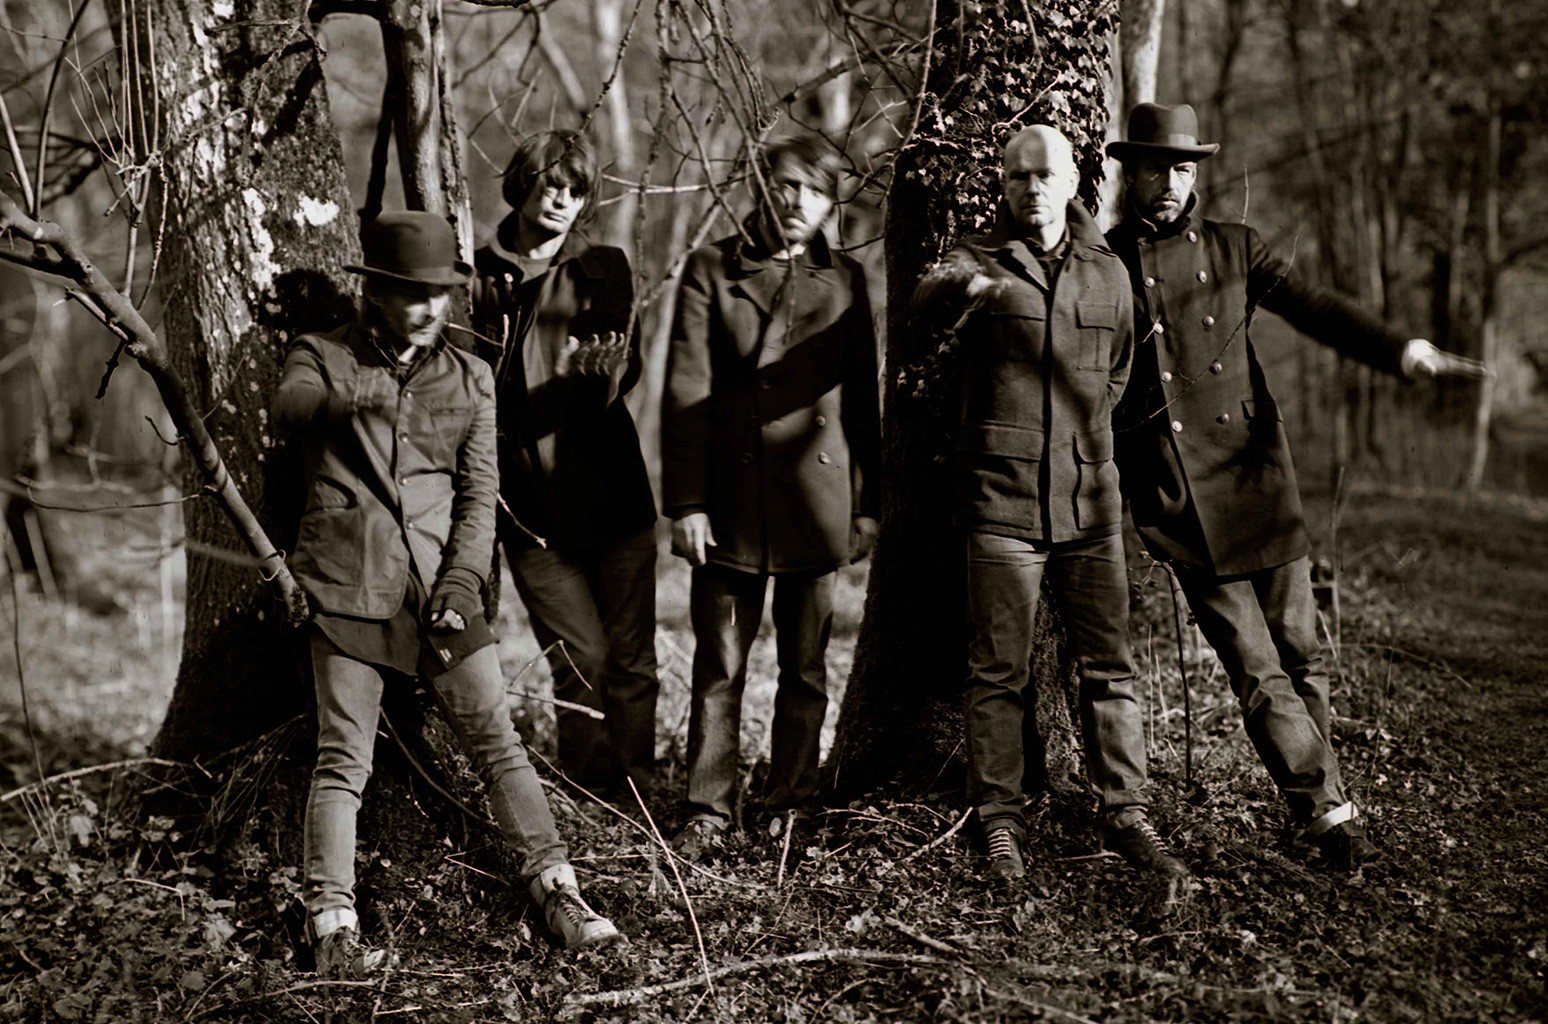 Radiohead photographed in 2011.